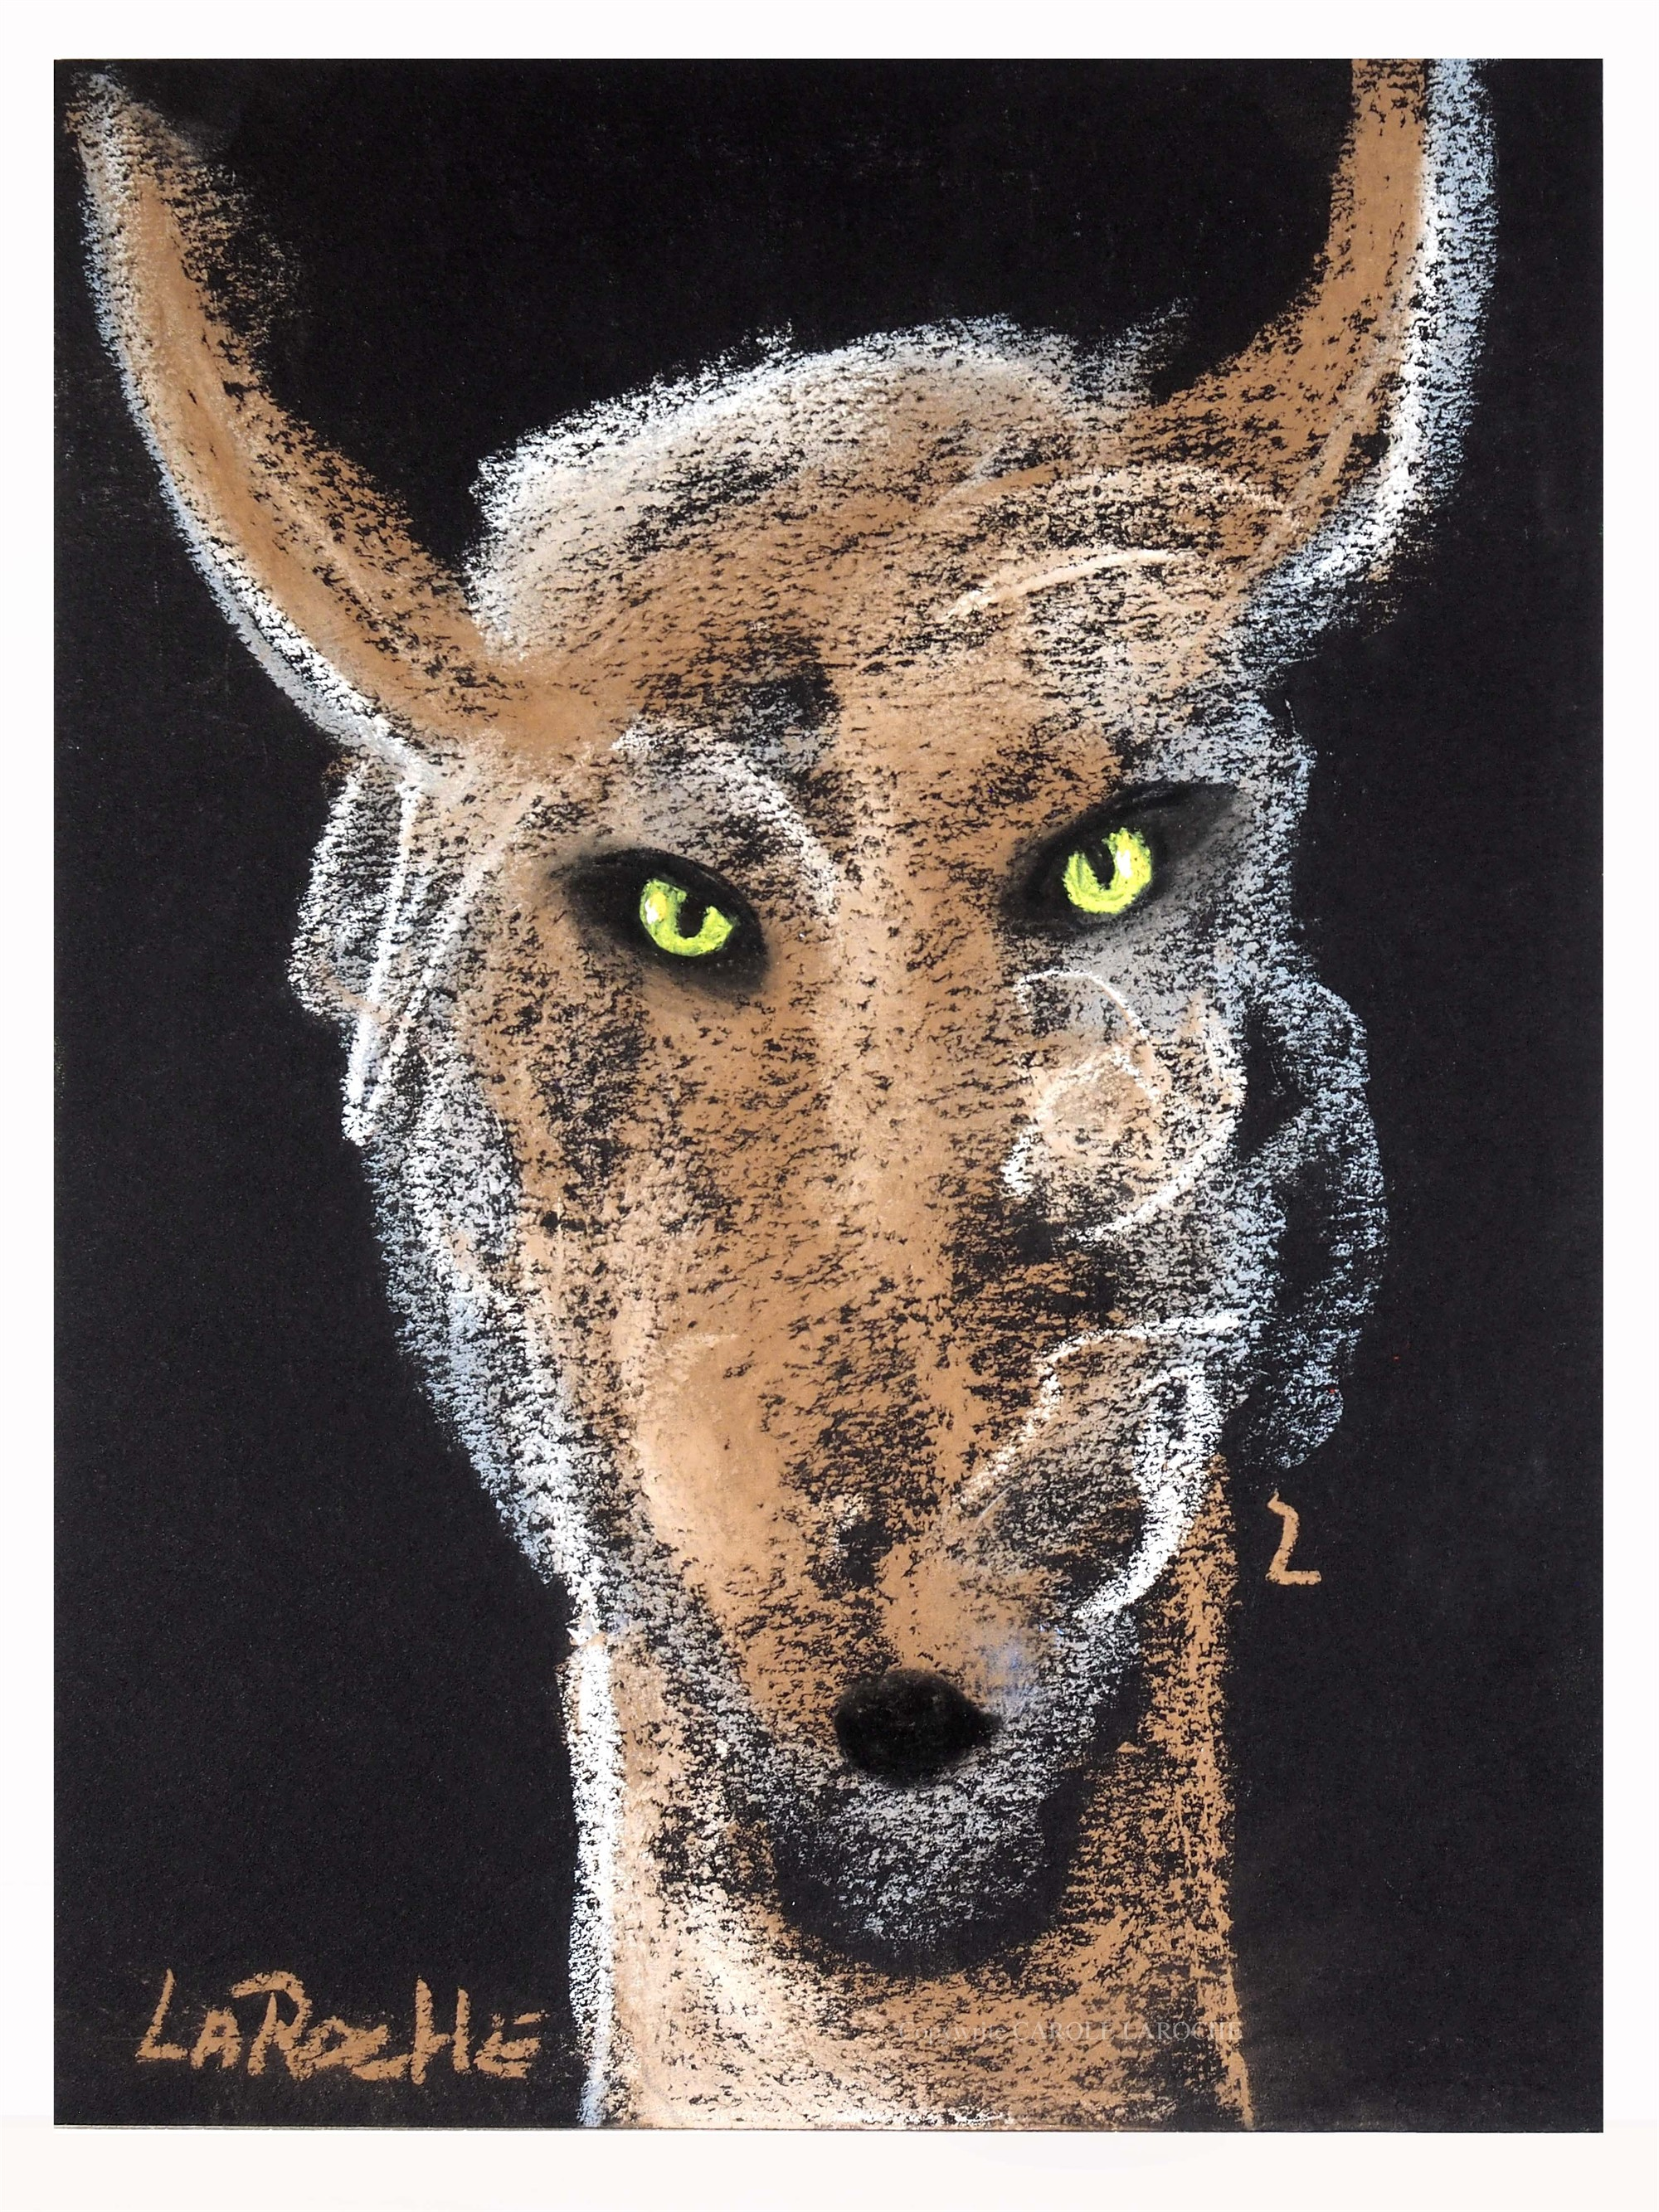 DEER MESSENGER by Carole LaRoche